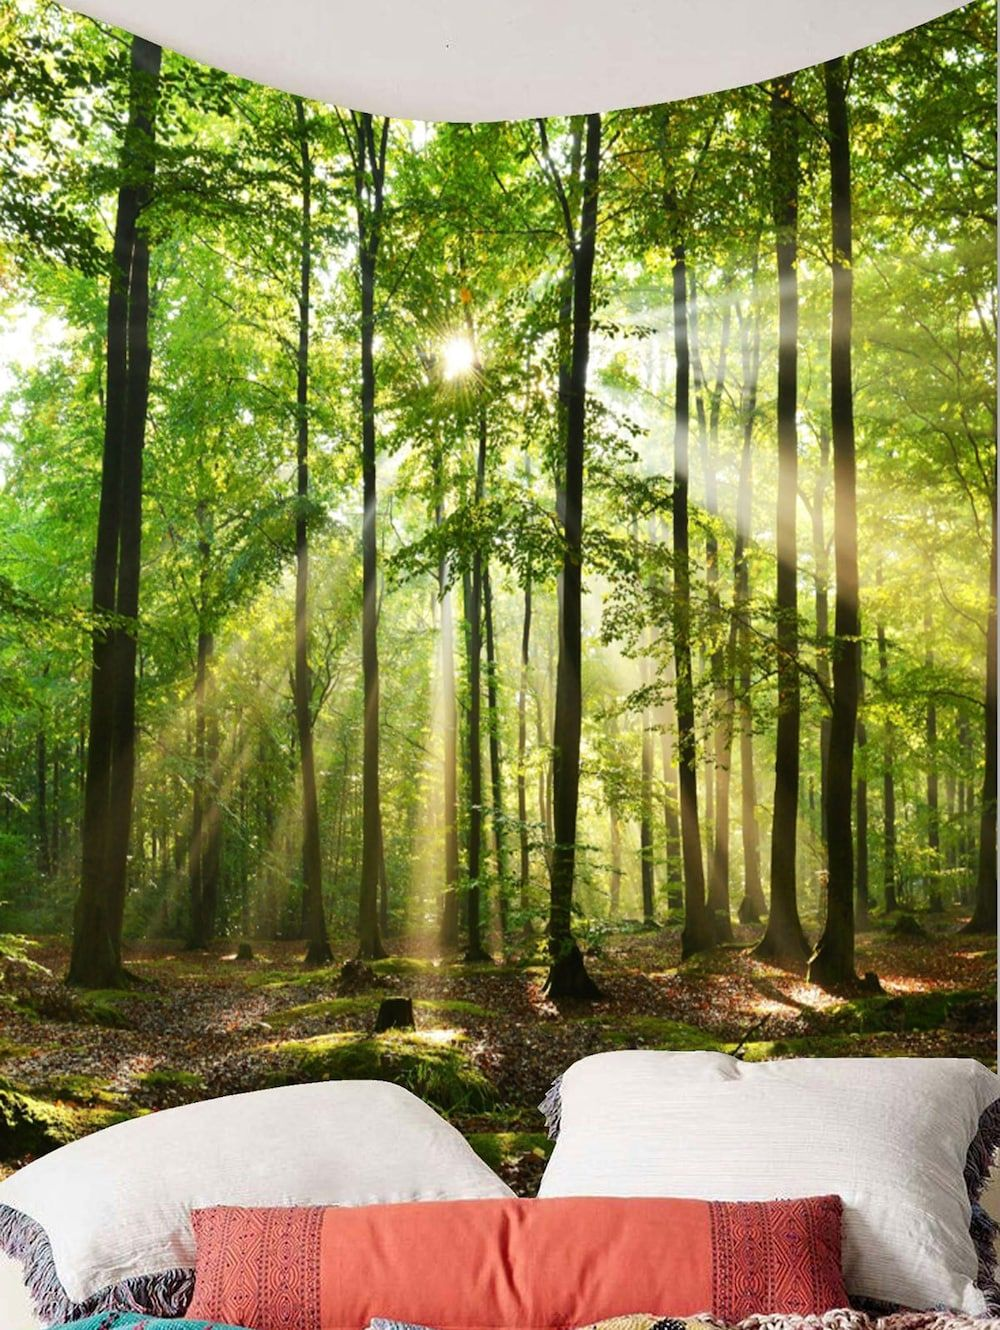 Forest Sunlight Decorative Wall Tapestry | Decorative walls, Wall ...